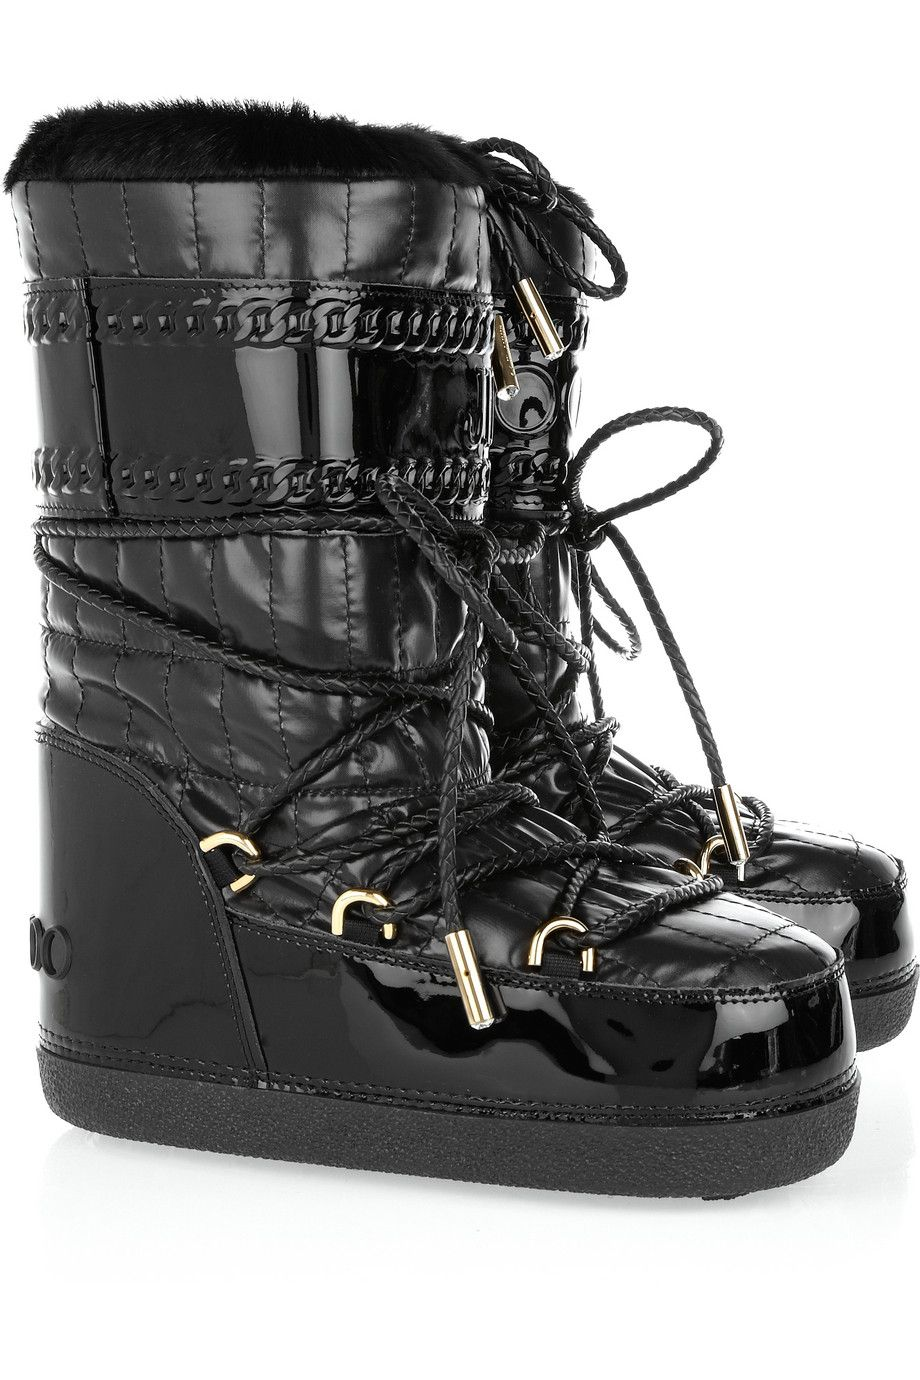 Jimmy choo Leather Snow Boots hpg3r